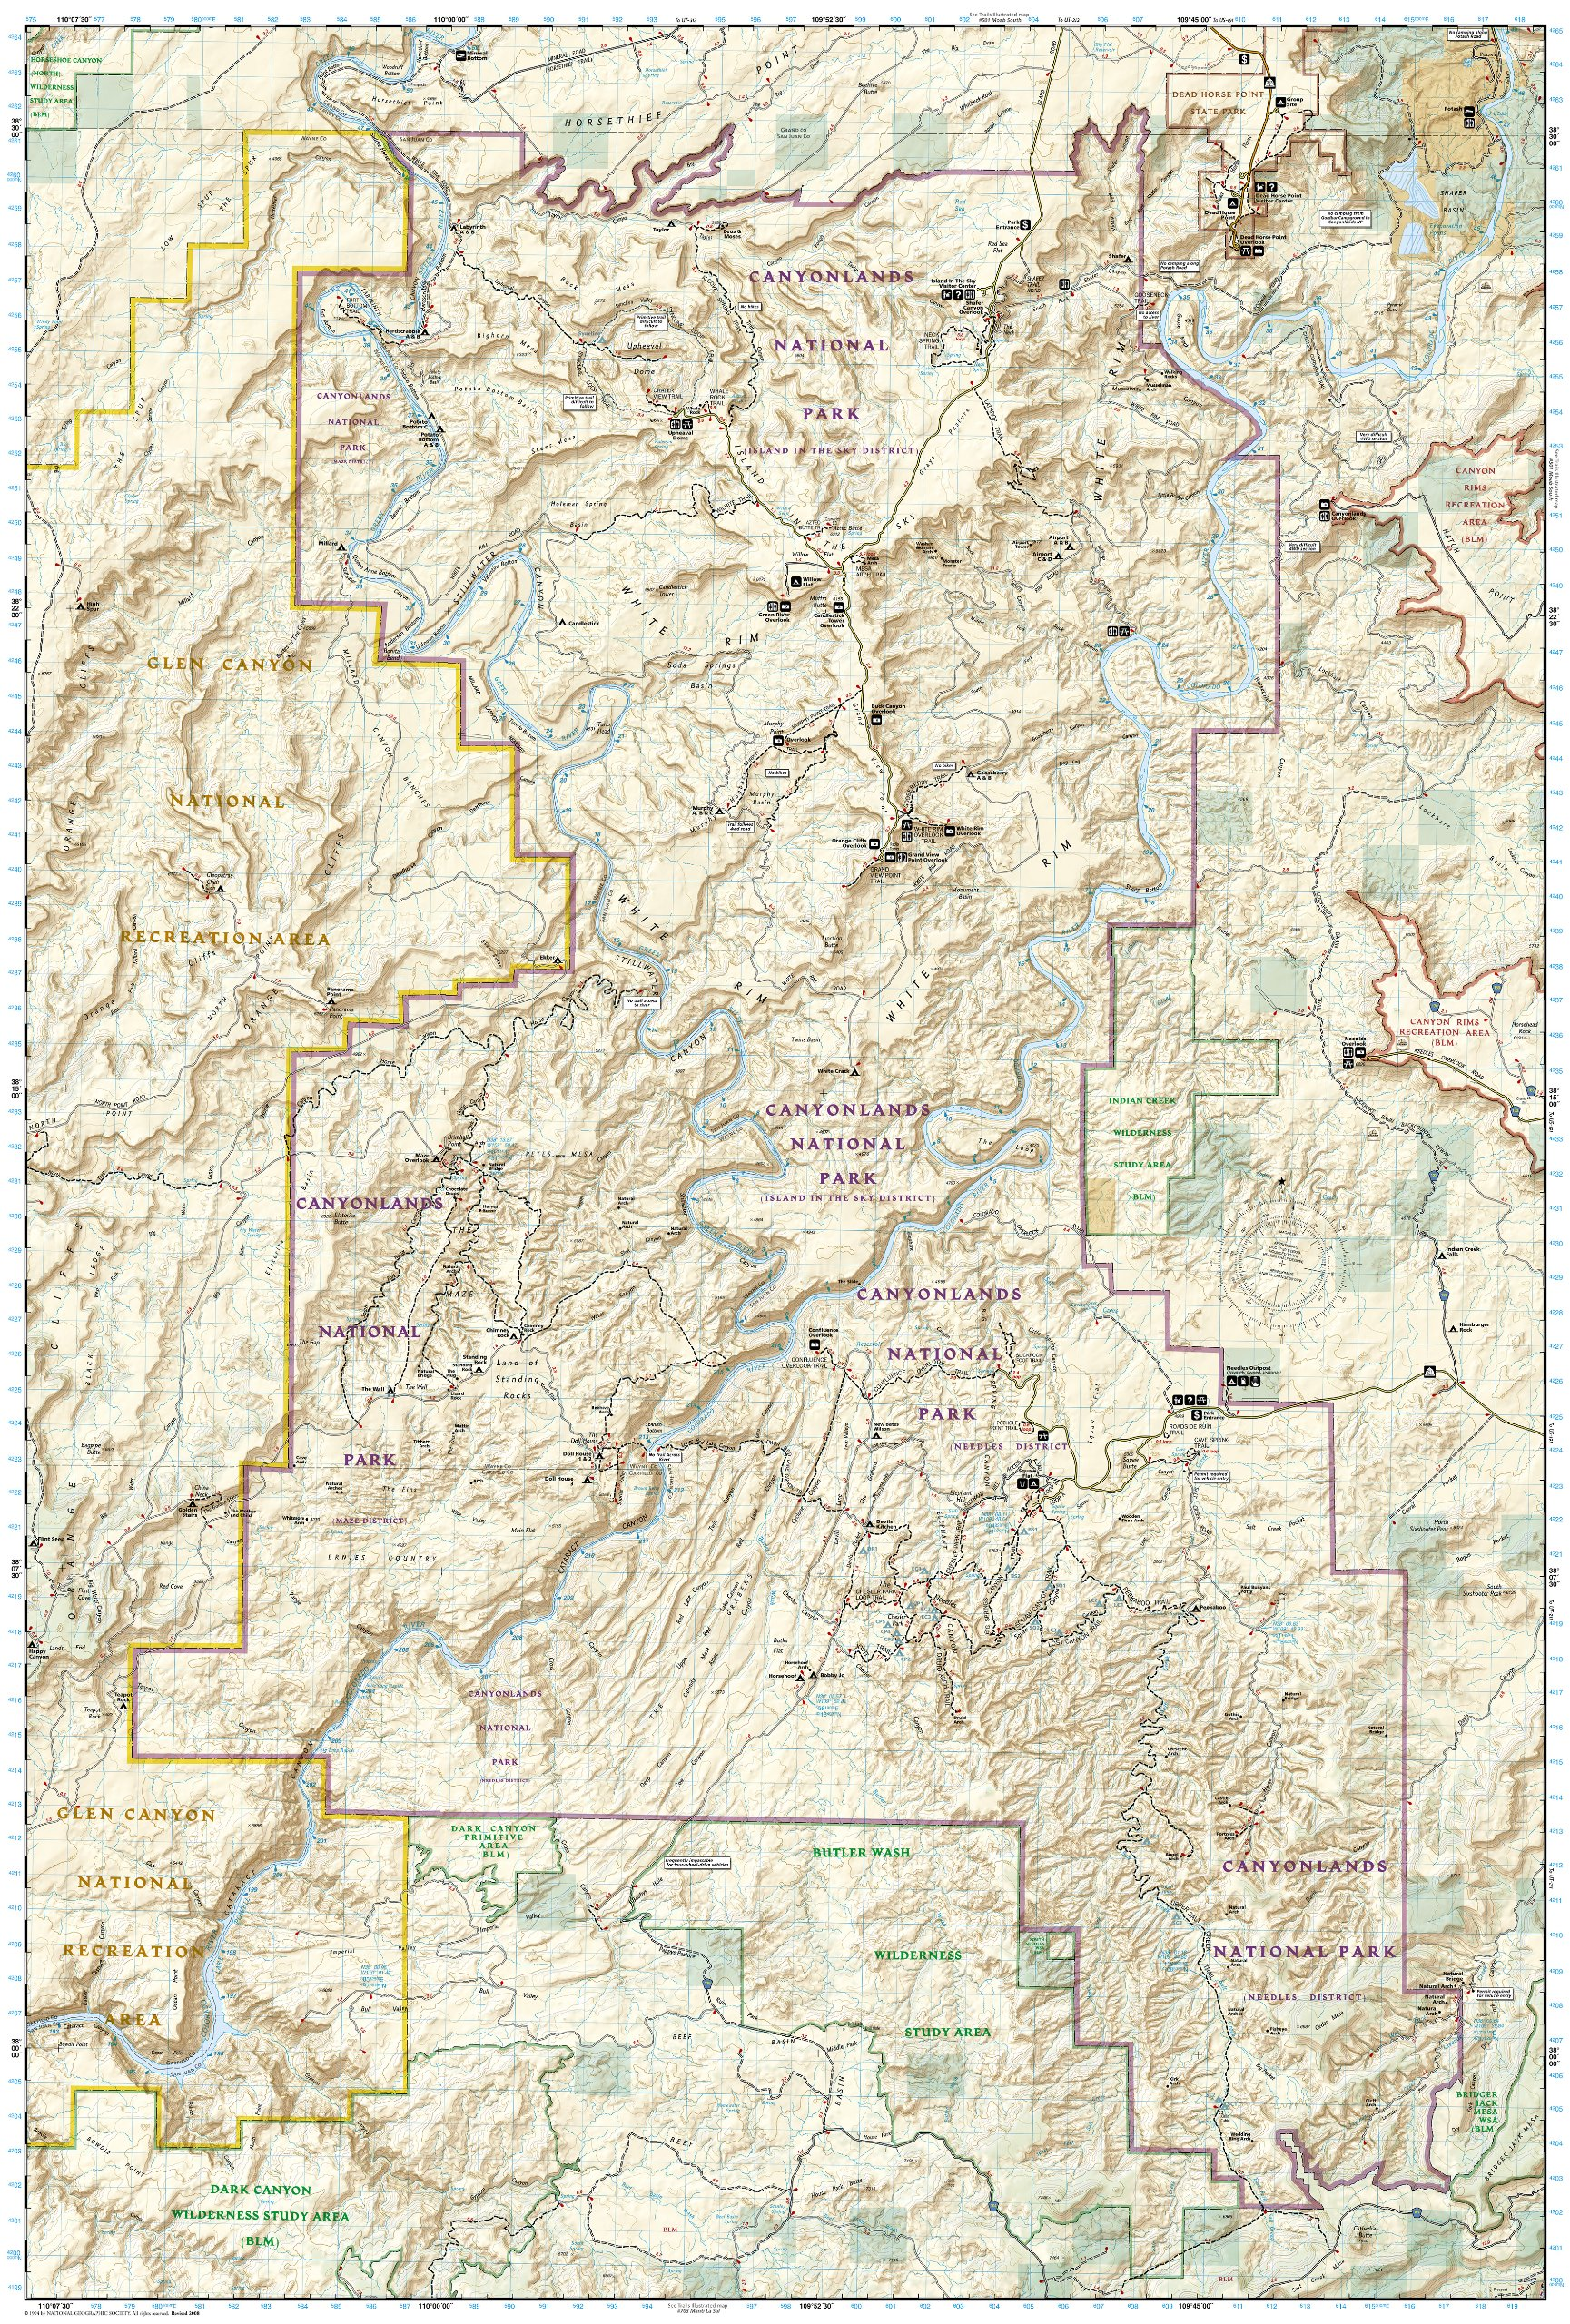 National Geographic Trails Illustrated Map 210 Canyonlands UT